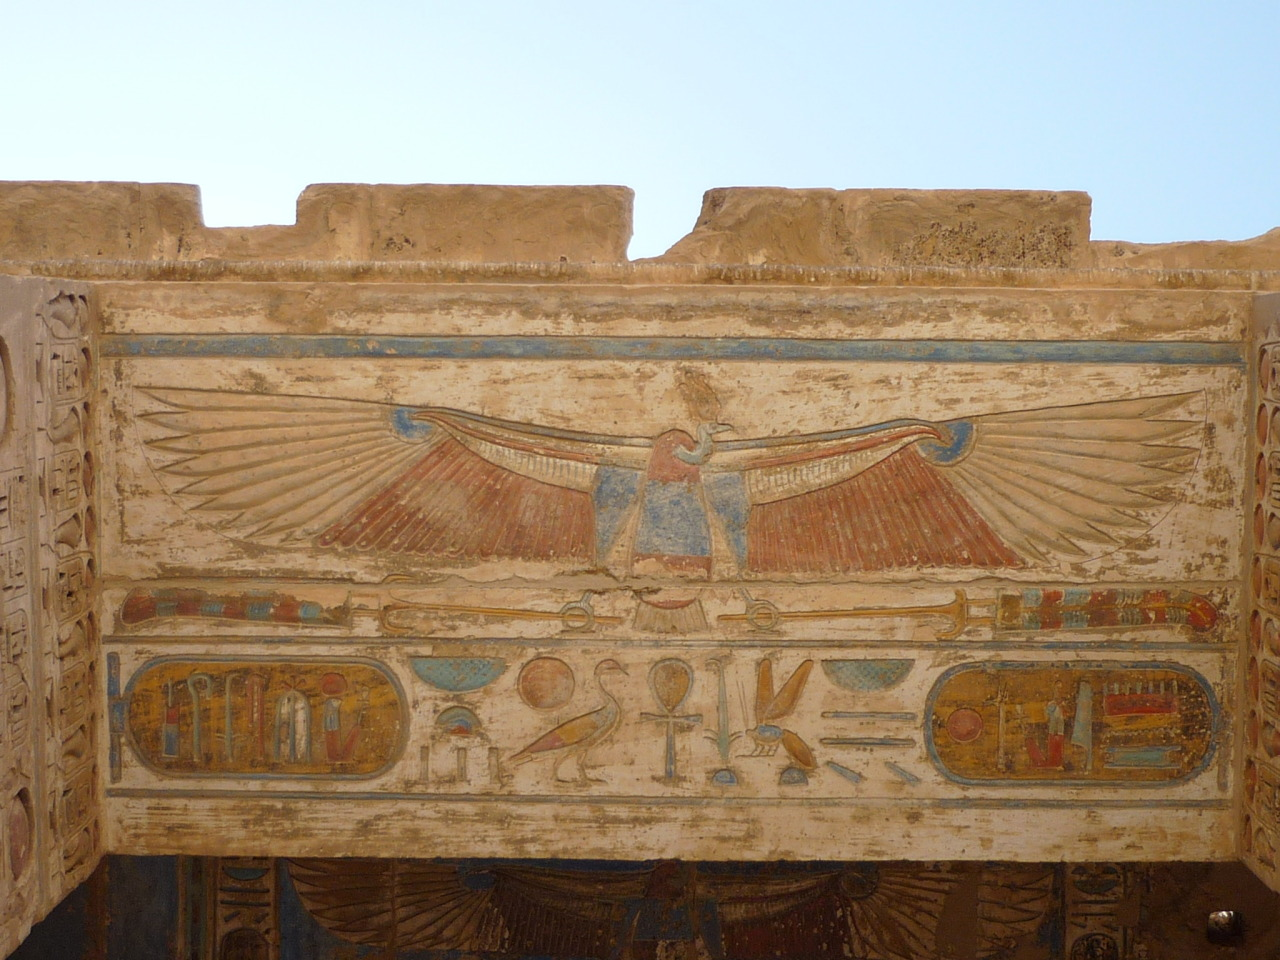 Ceiling with Nekhbet, mortuary temple of Ramses III, Medinet Habu, Theban Necropolis, Egypt. Photo courtesy & taken by Rémih